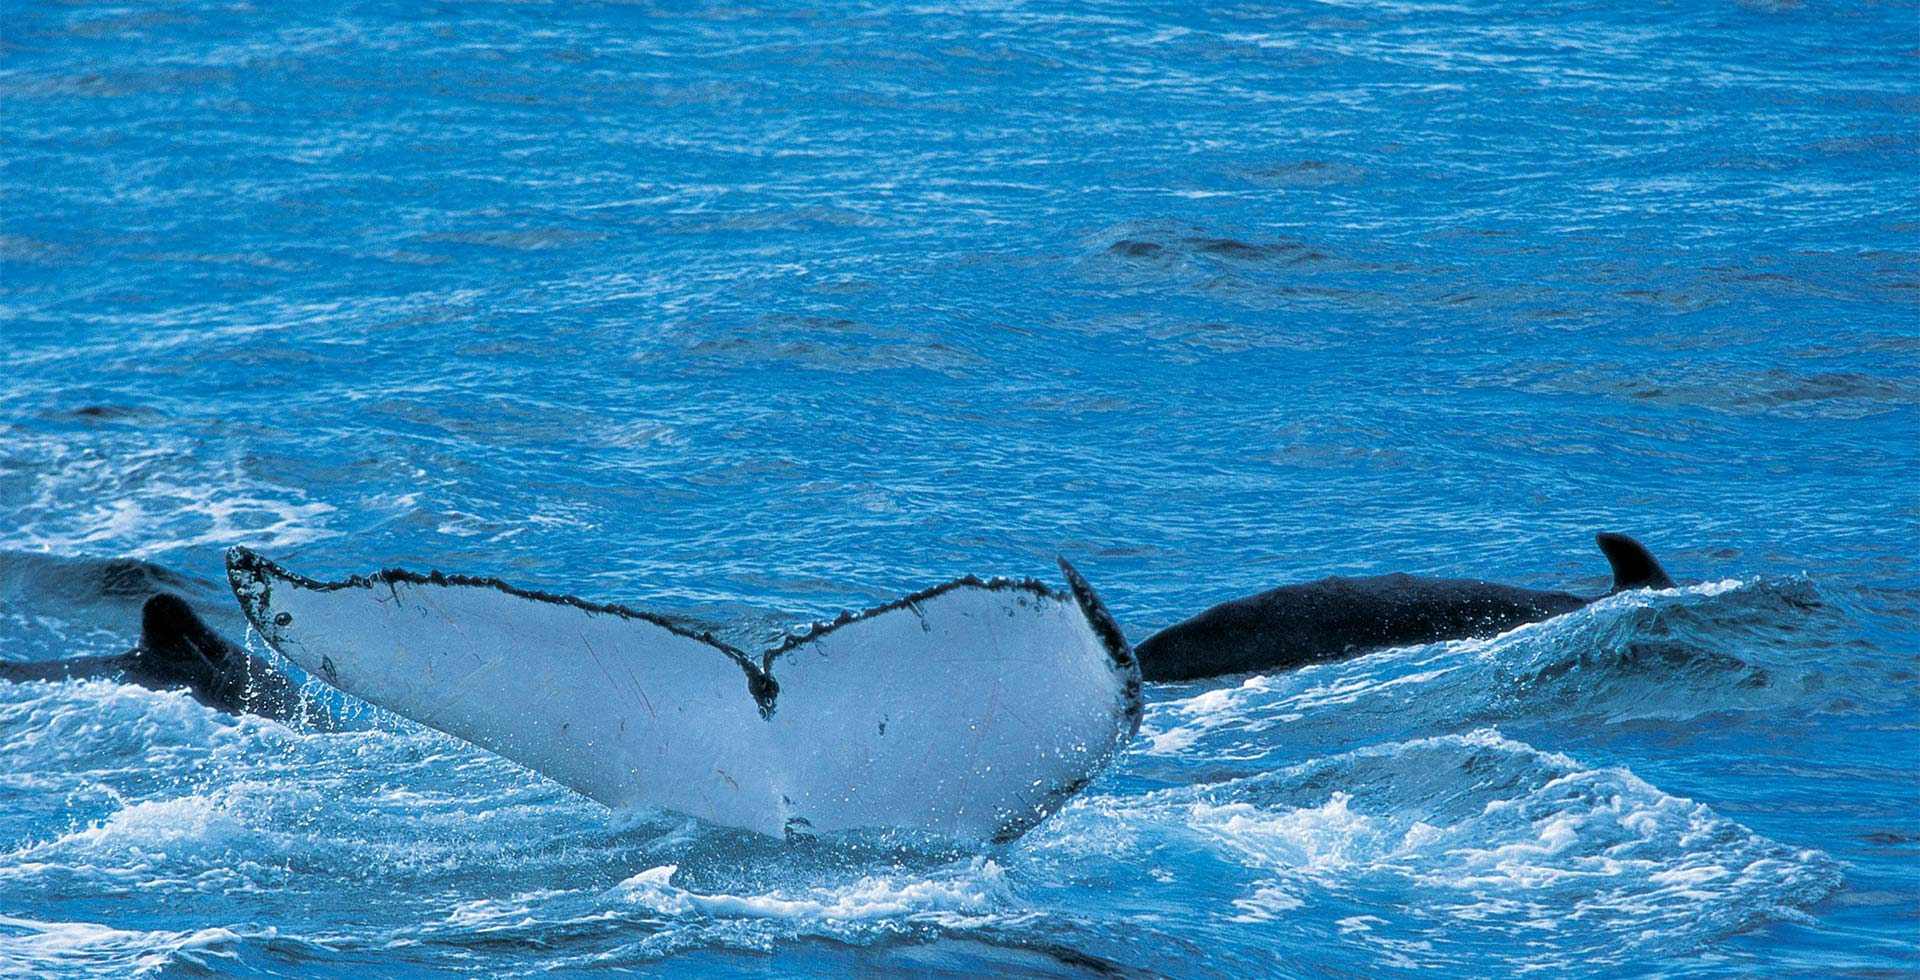 Visit Flinders Bay in Augusta and catch a view of the Whales!